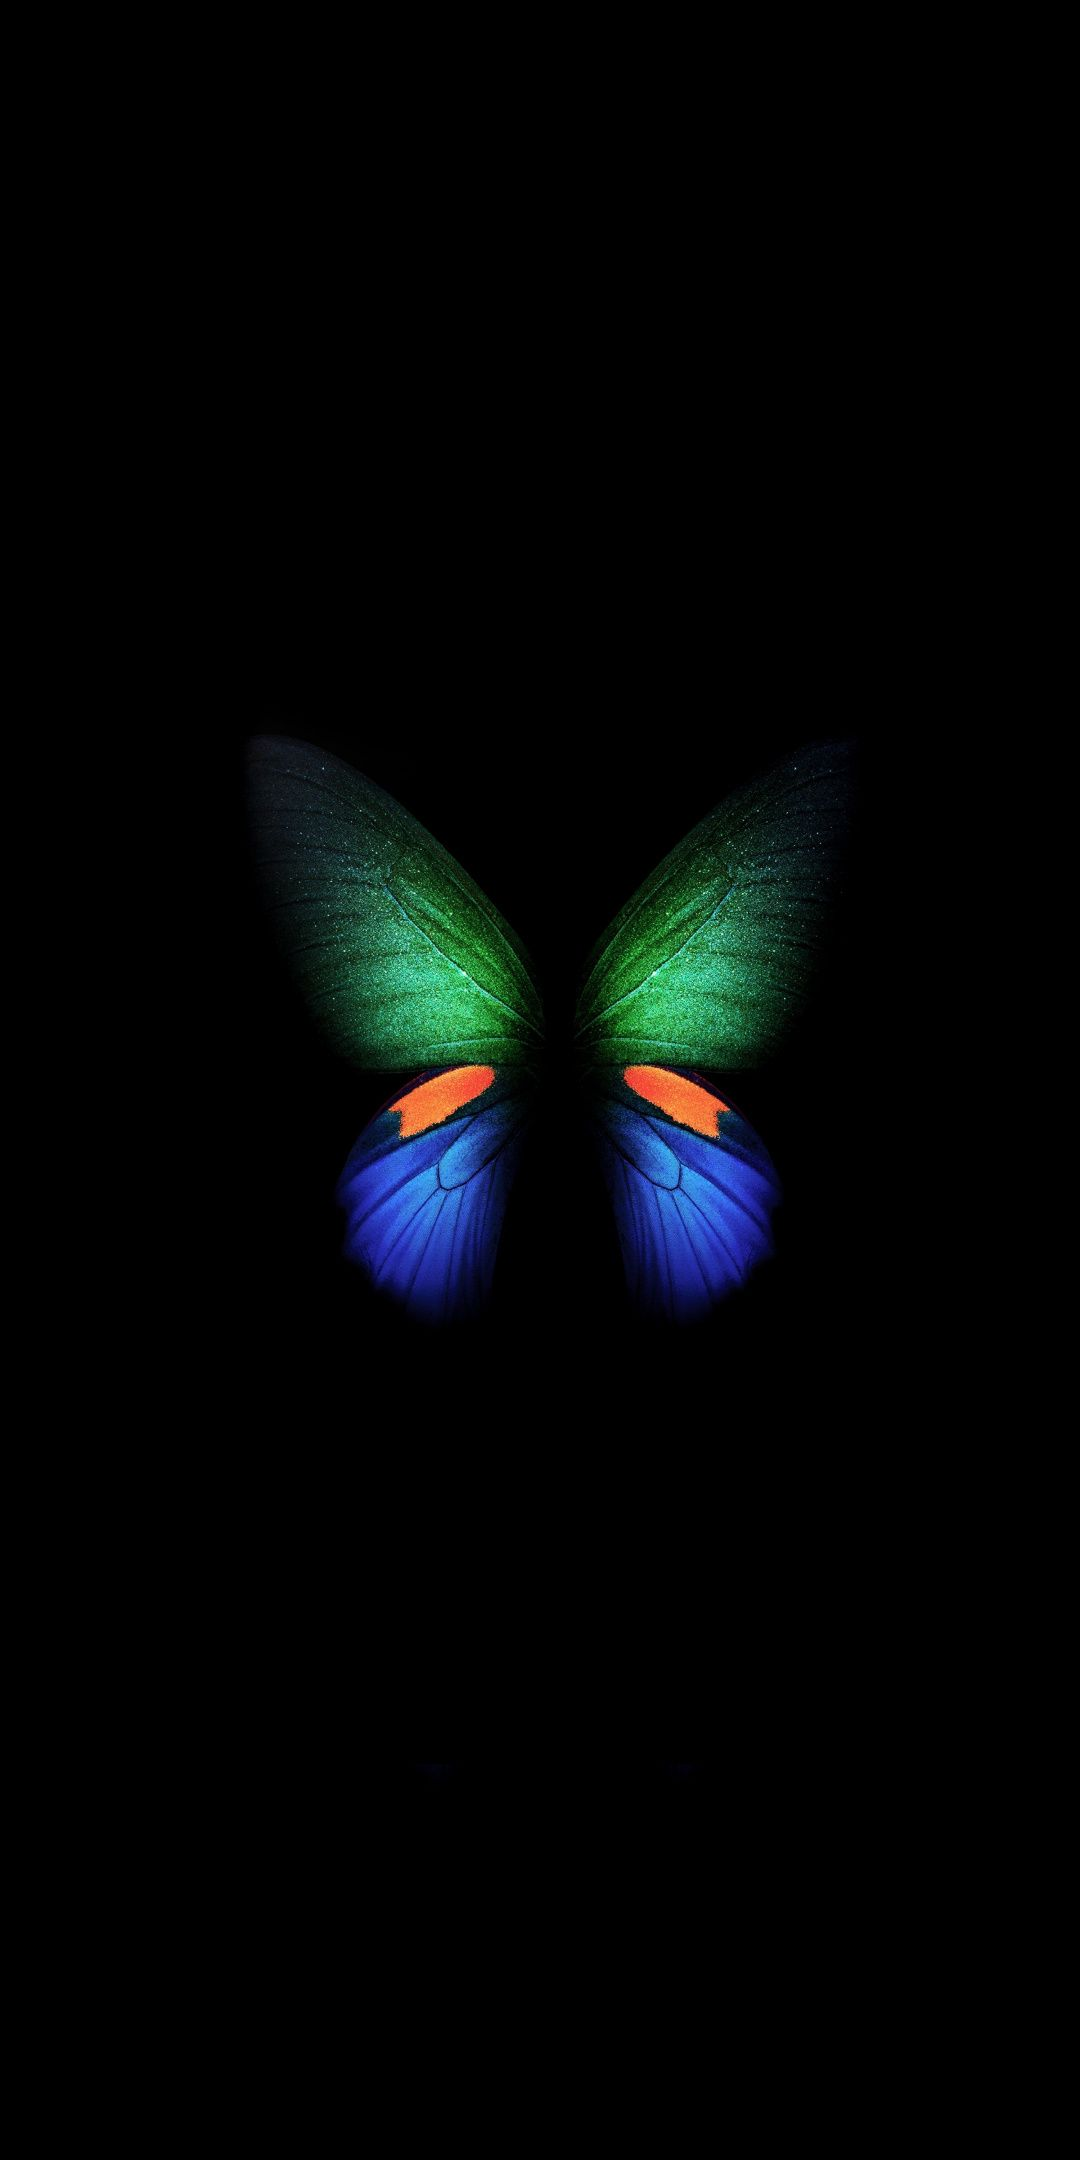 Samsung Galaxy Fold green blue butterfly minimal art 1080x2160 1080x2160